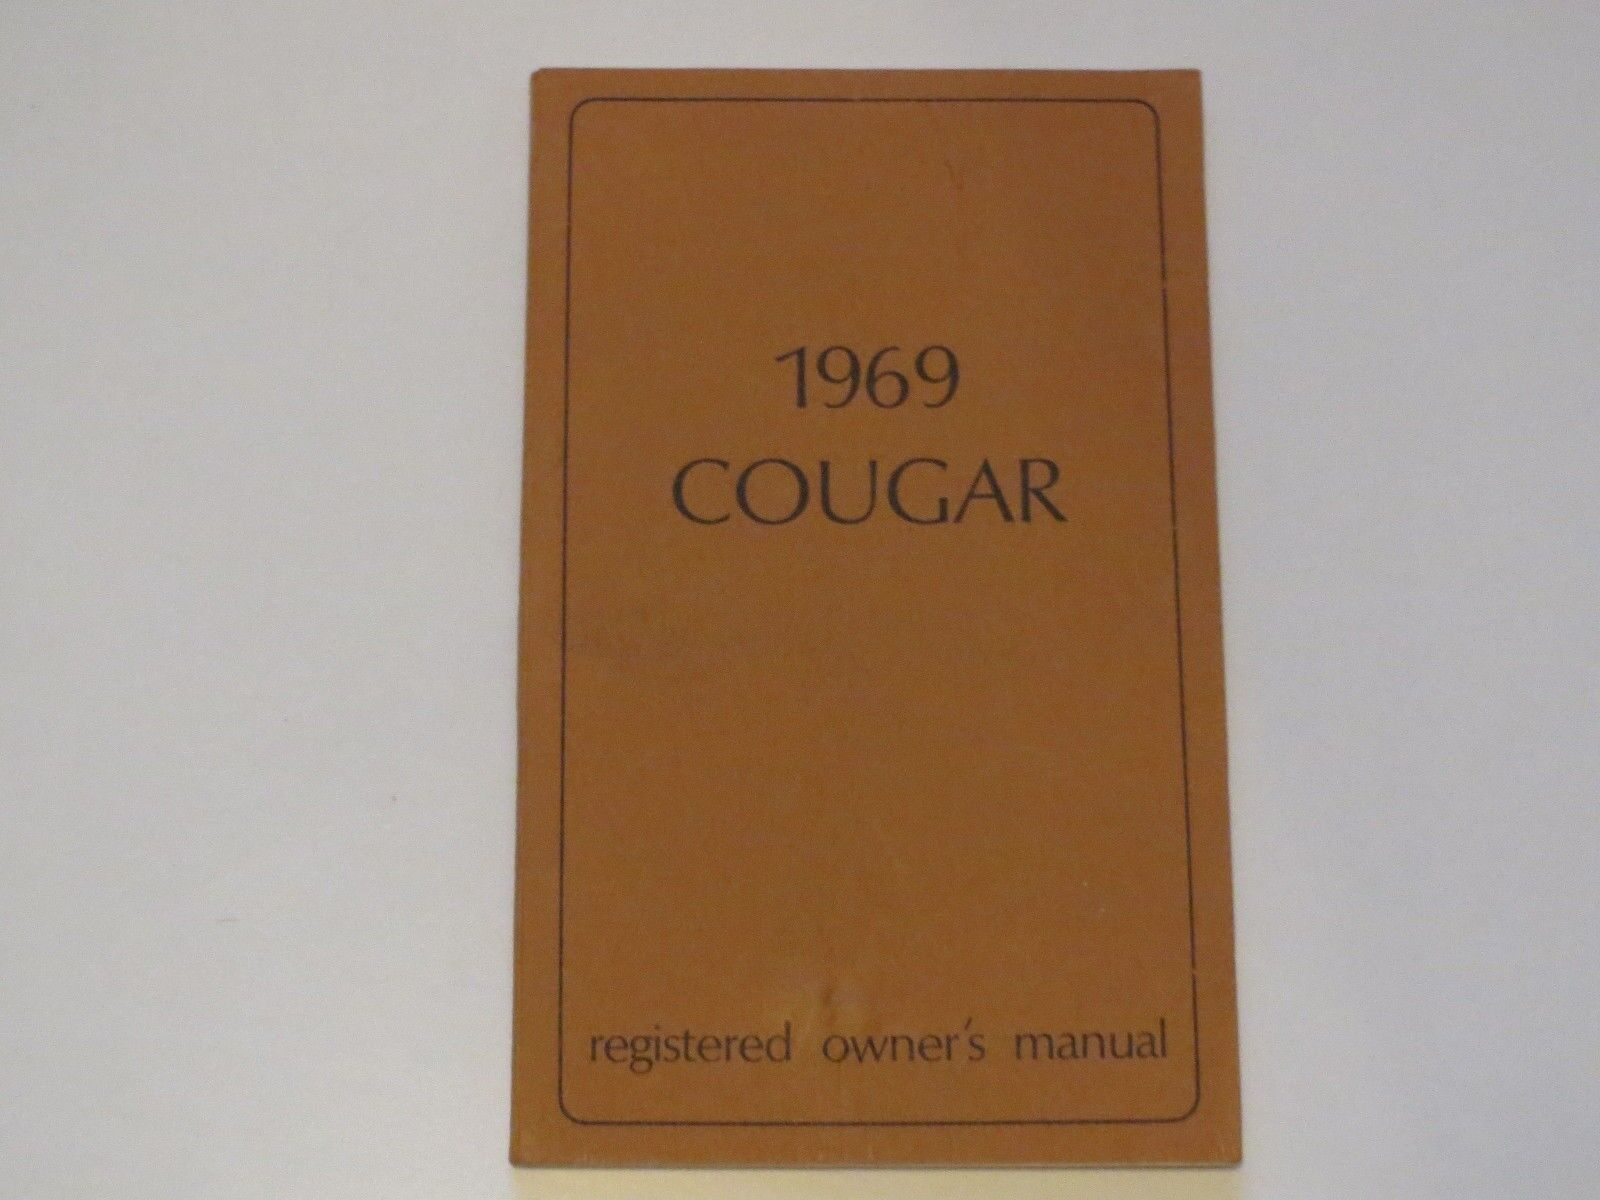 1969 Mercury Cougar And Xr-7 New Correct Reproduction Licensed Owners Manual  1 of 1Only 3 available ...